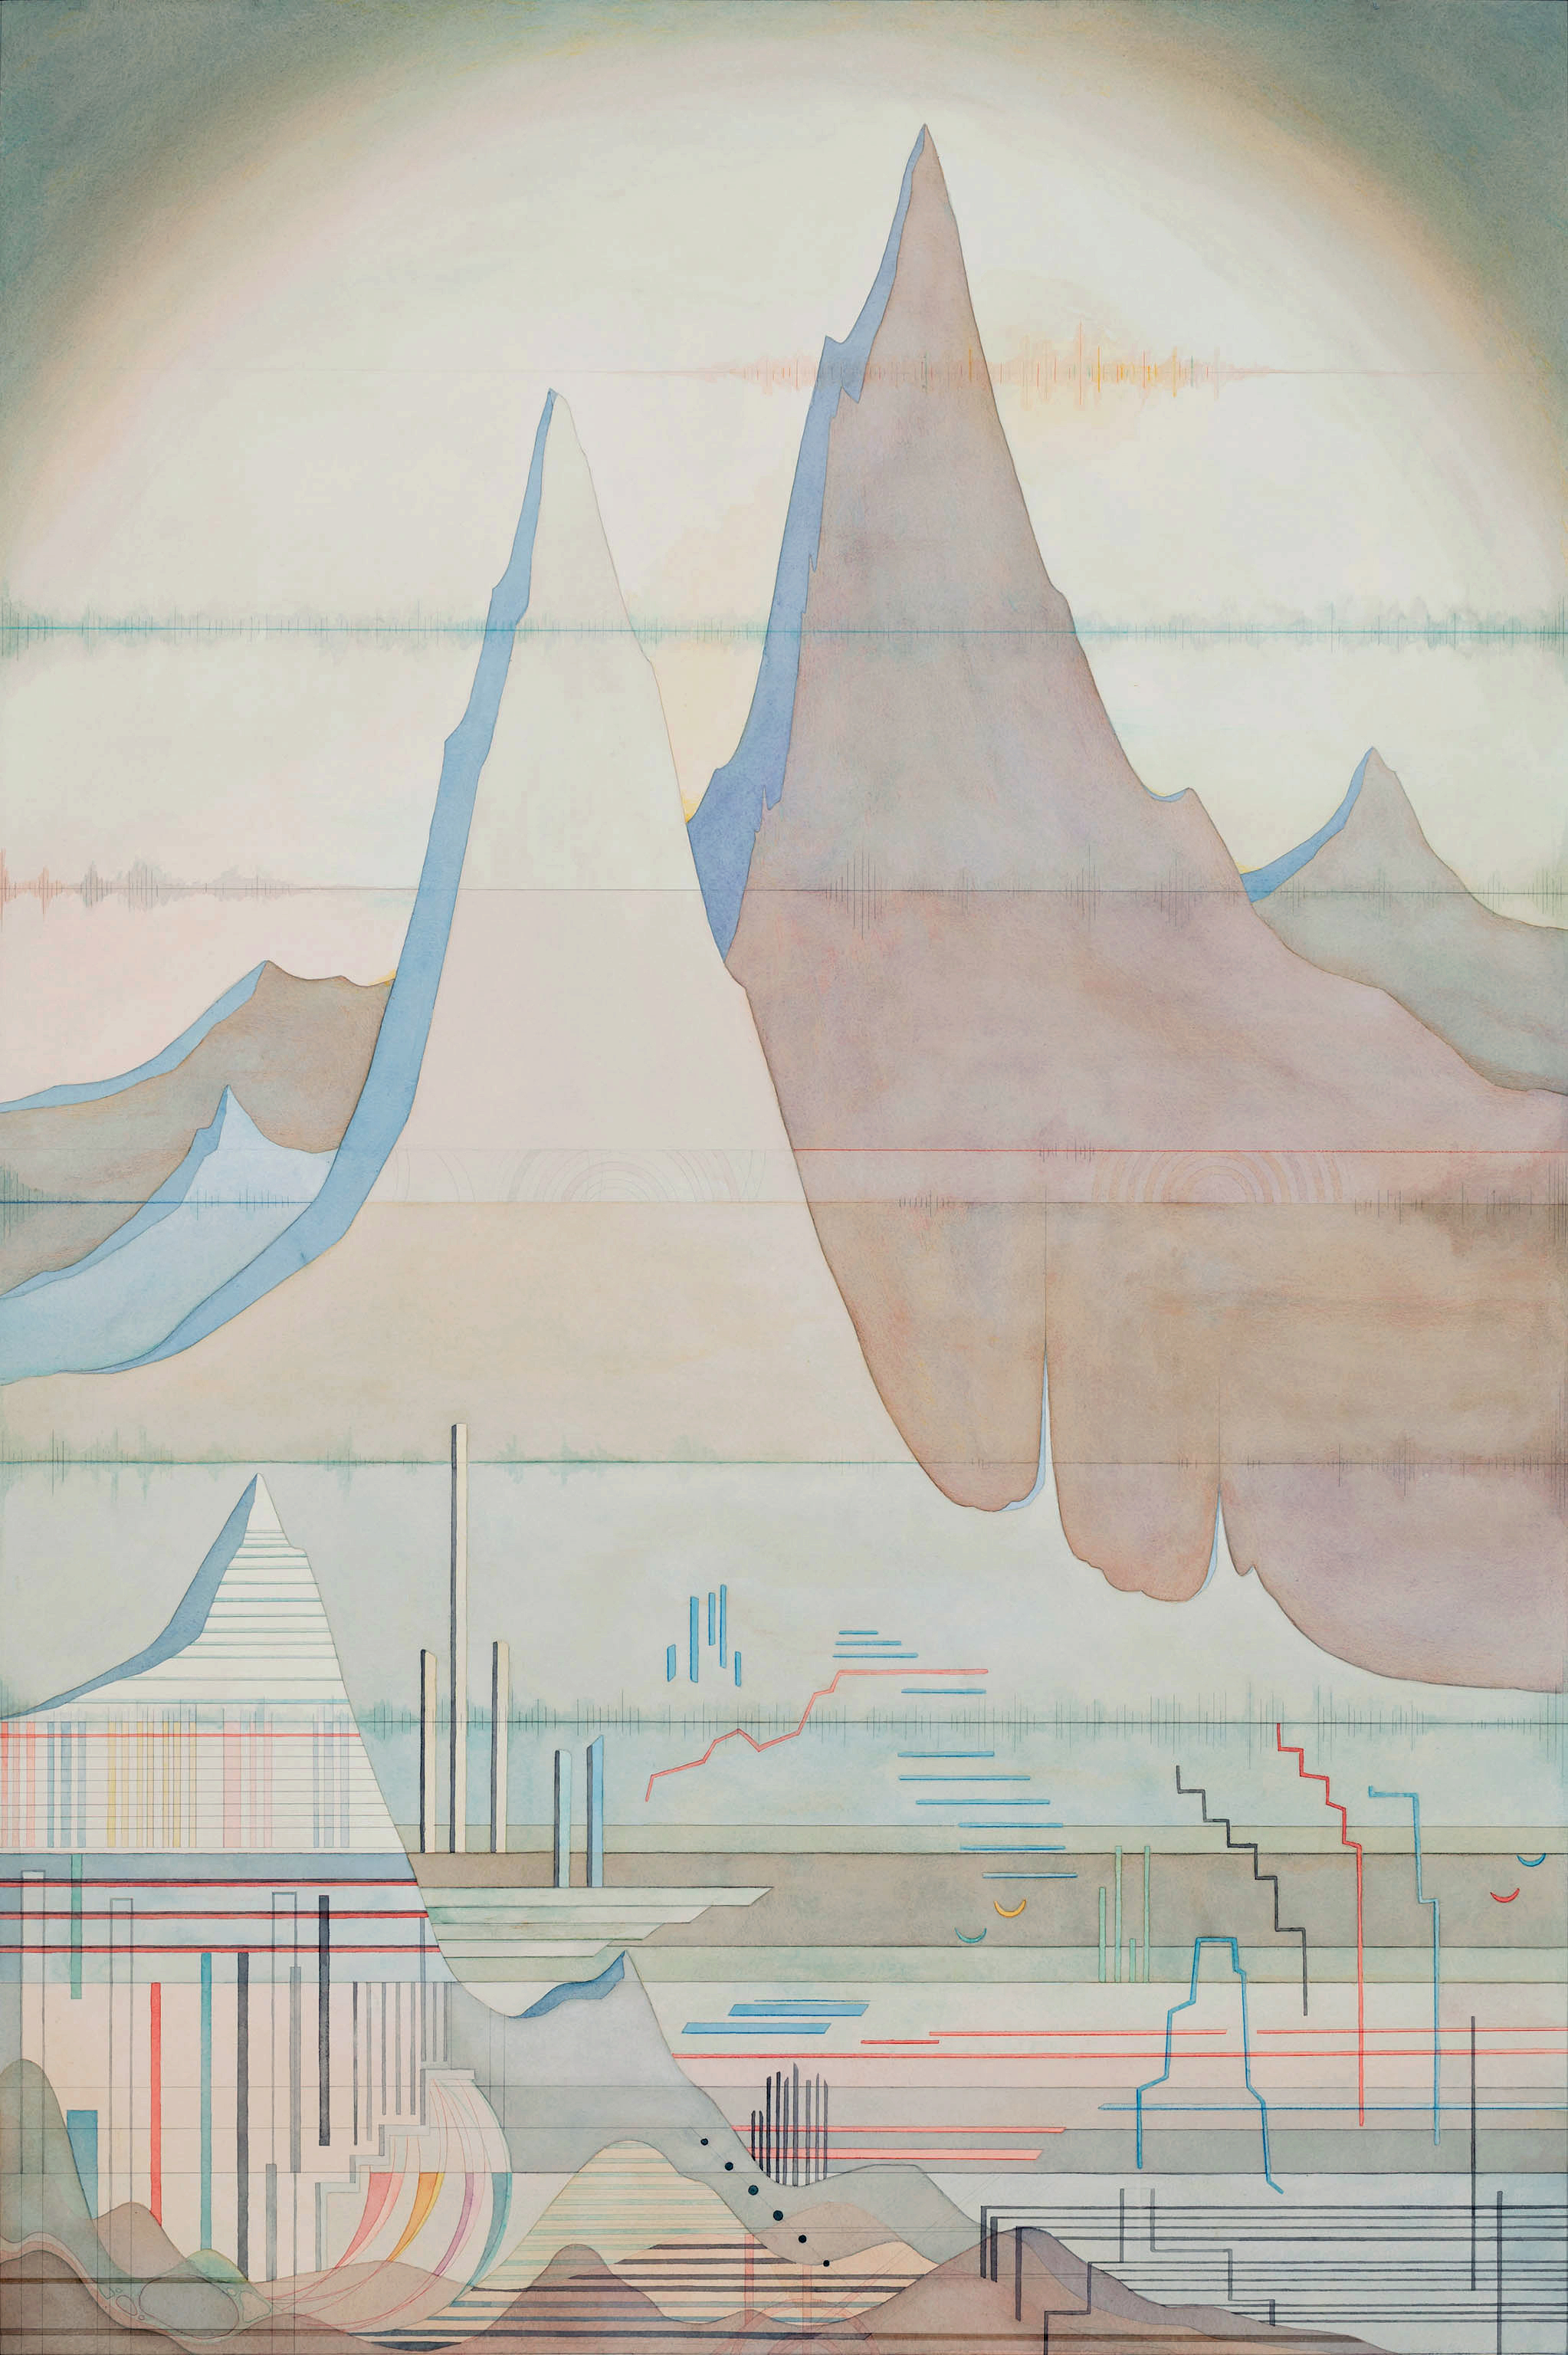 Audiography No. 2, 2013, Watercolor, water-soluble color pencil and pencil on paper, 137 x 91 cm